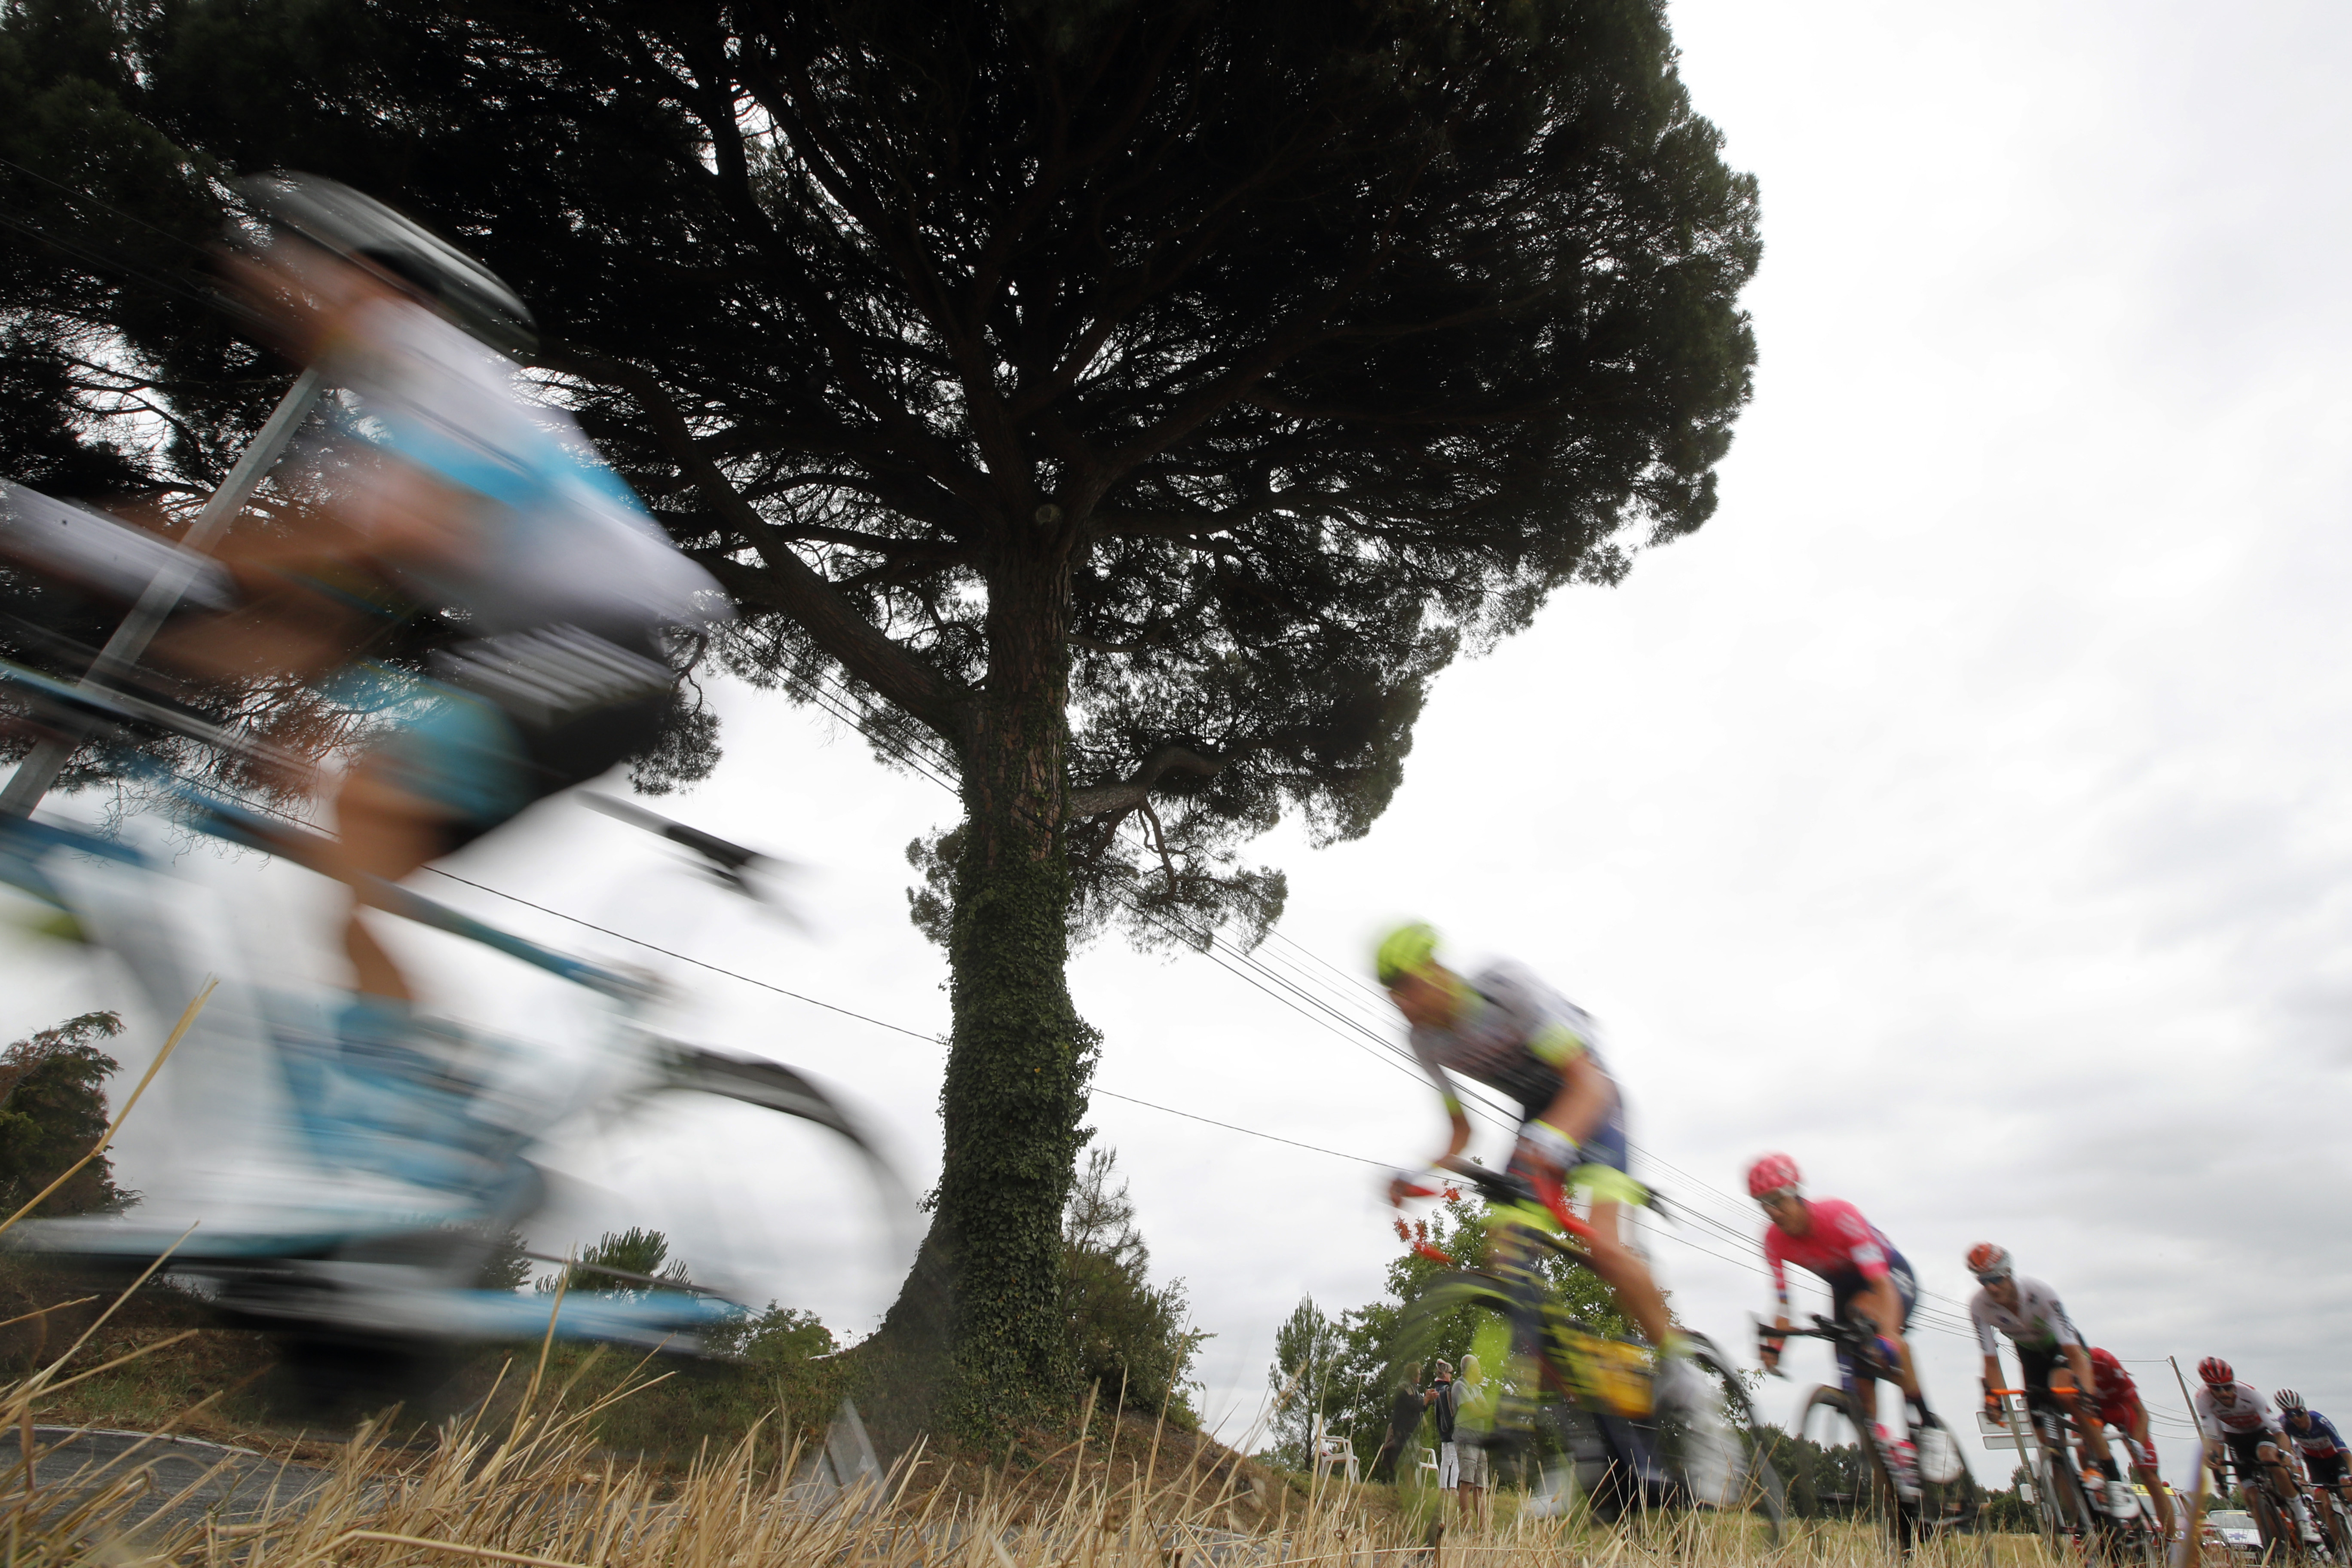 Giro and Vuelta to overlap in revised UCI cycling calendar